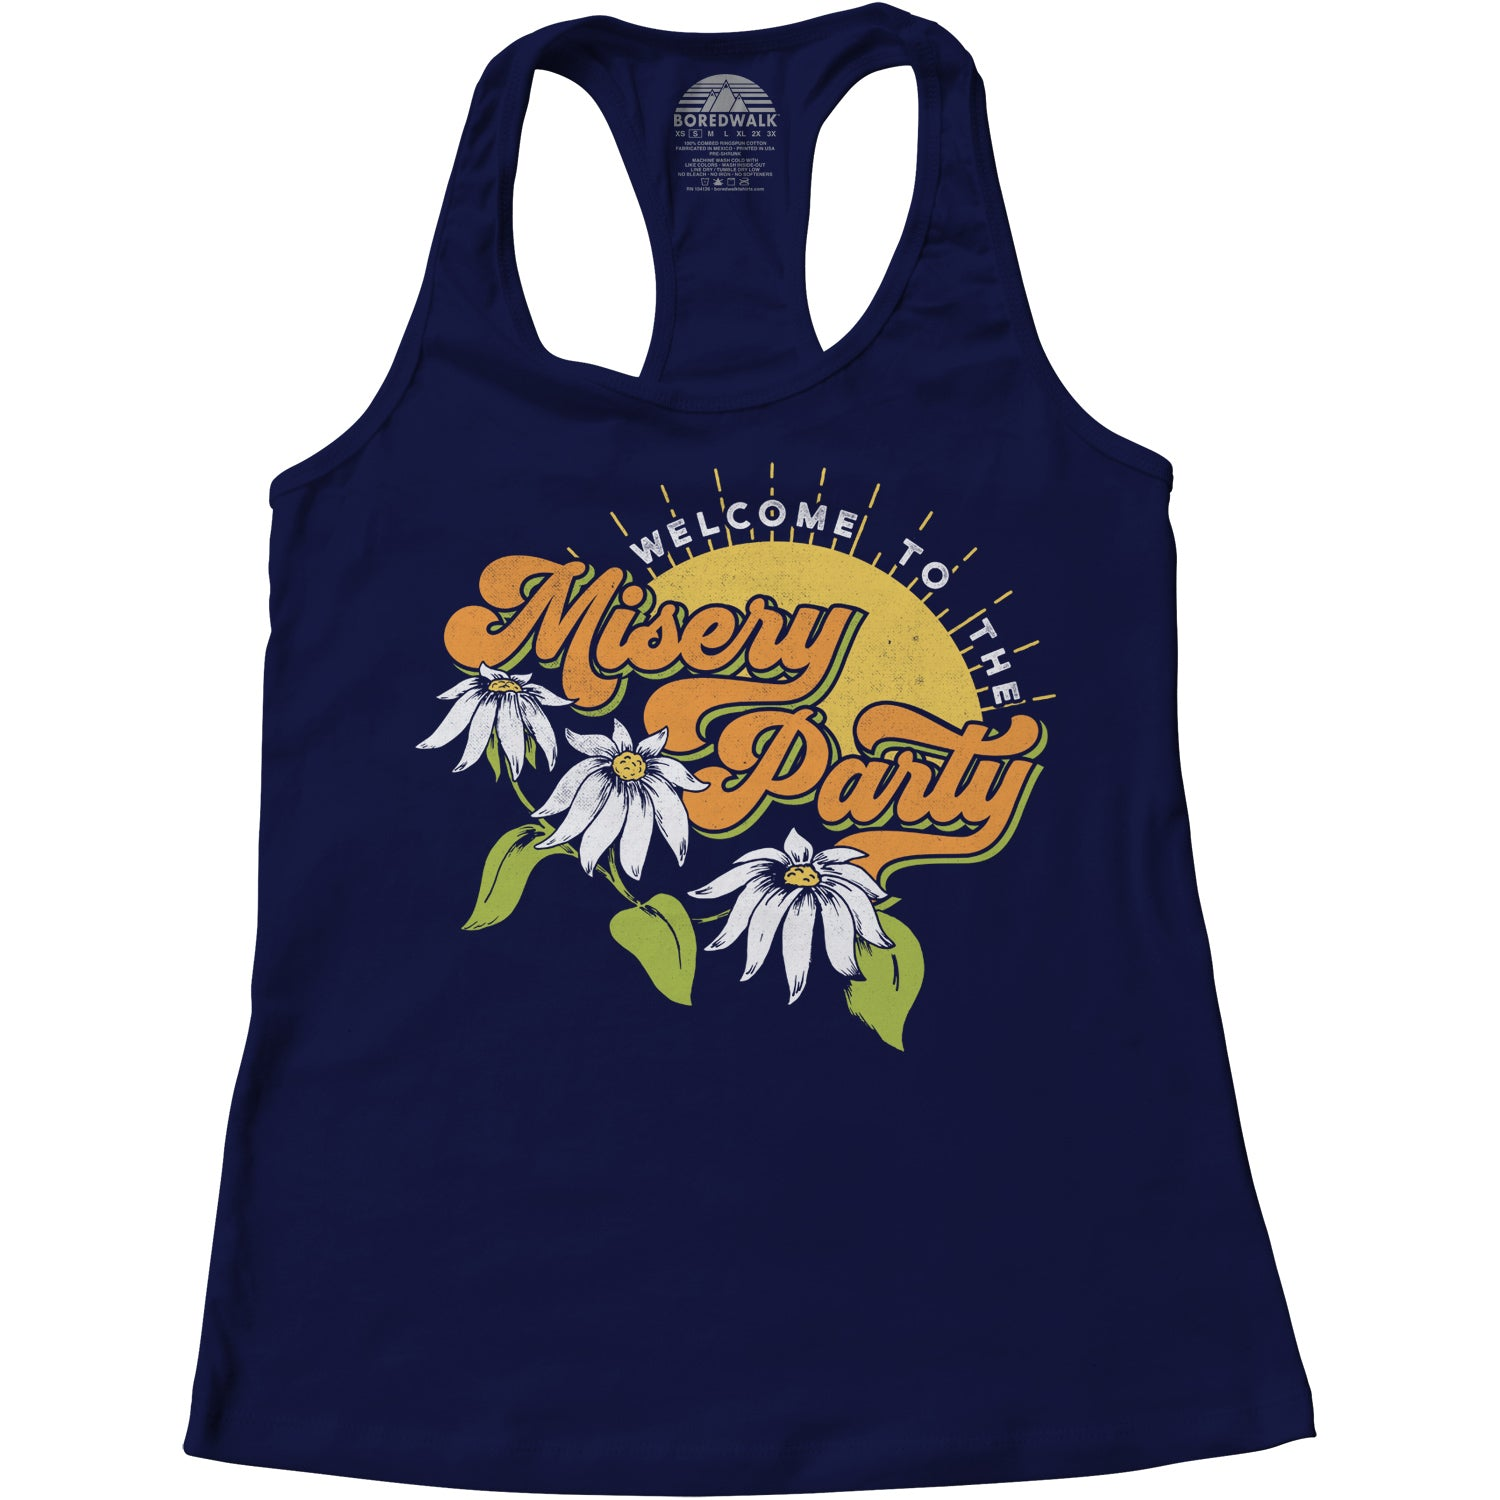 Women's Welcome To The Misery Party Racerback Tank Top